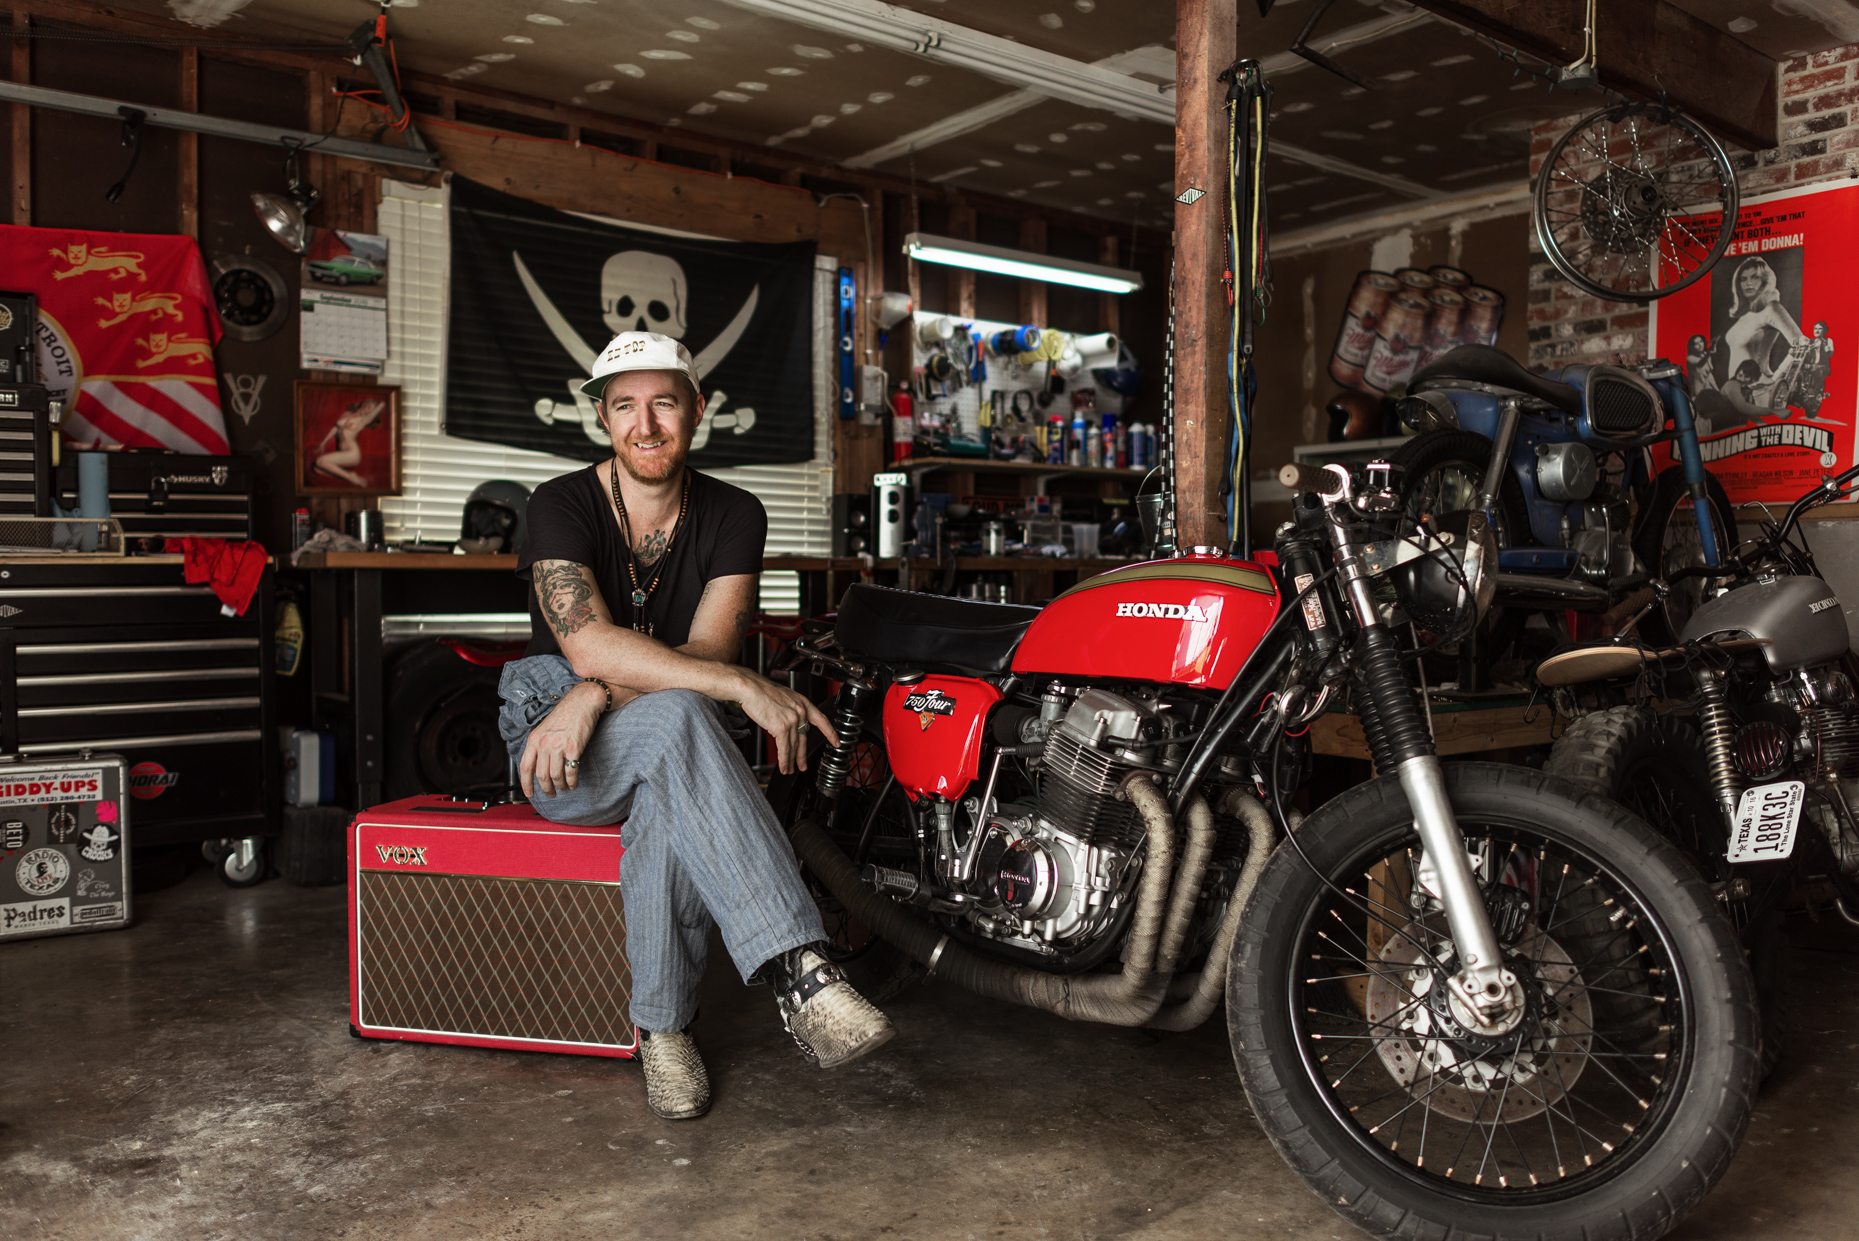 Austin-Commercial-Editorial-Photographer-Jonathan-Terrell-Honda-750-Four-Motorcycle